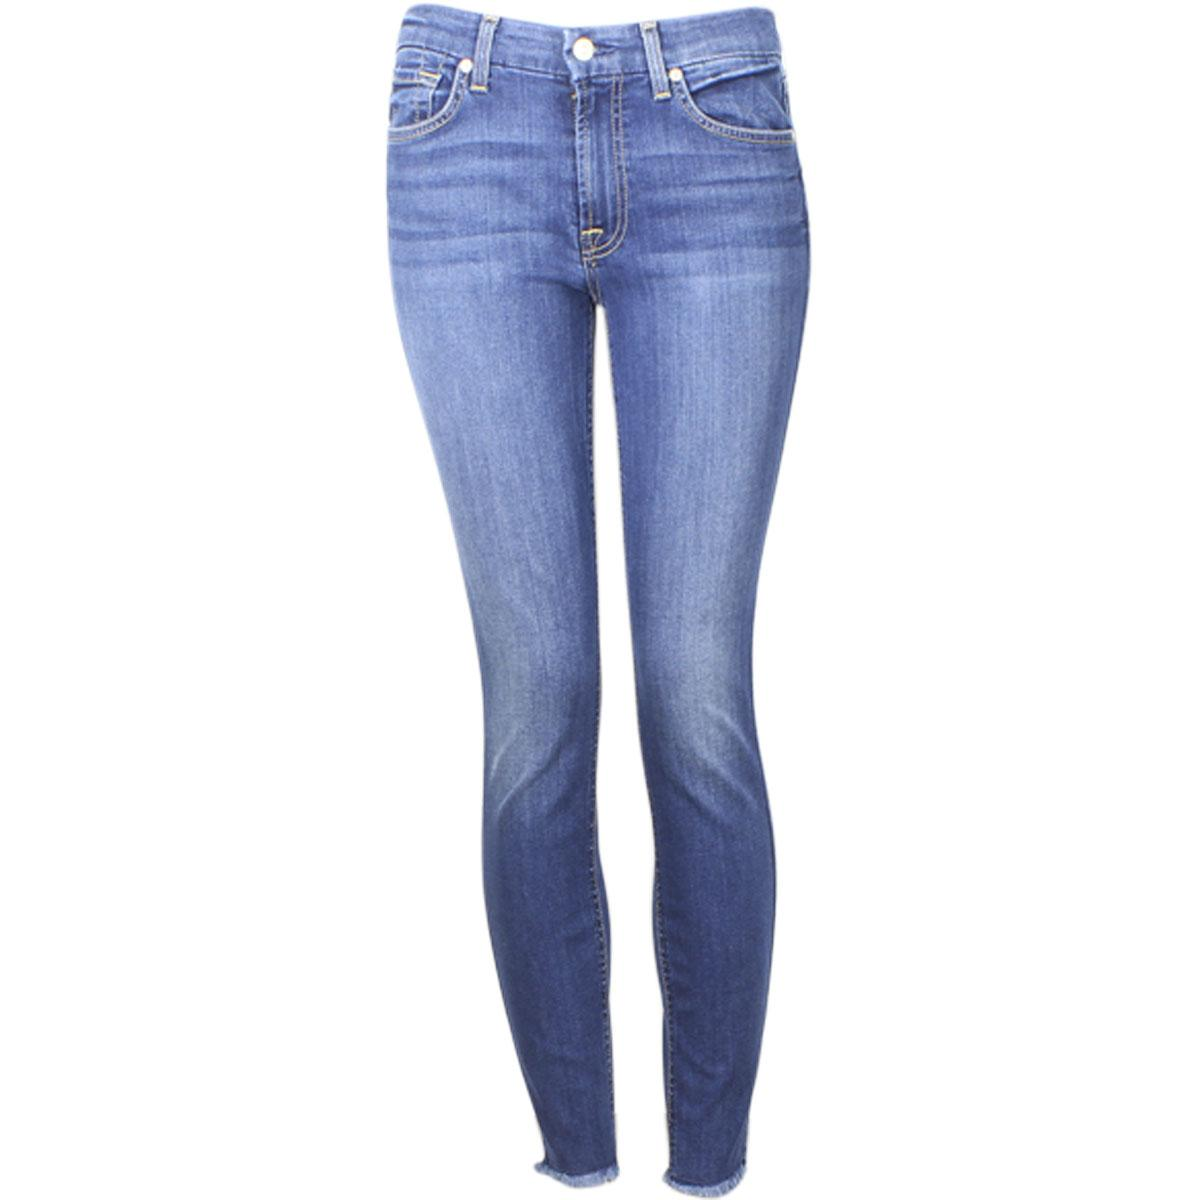 Image of 7 For All Mankind Women's (B)Air Denim The Ankle Skinny Raw Hem Jeans - Blue - 24 (00)